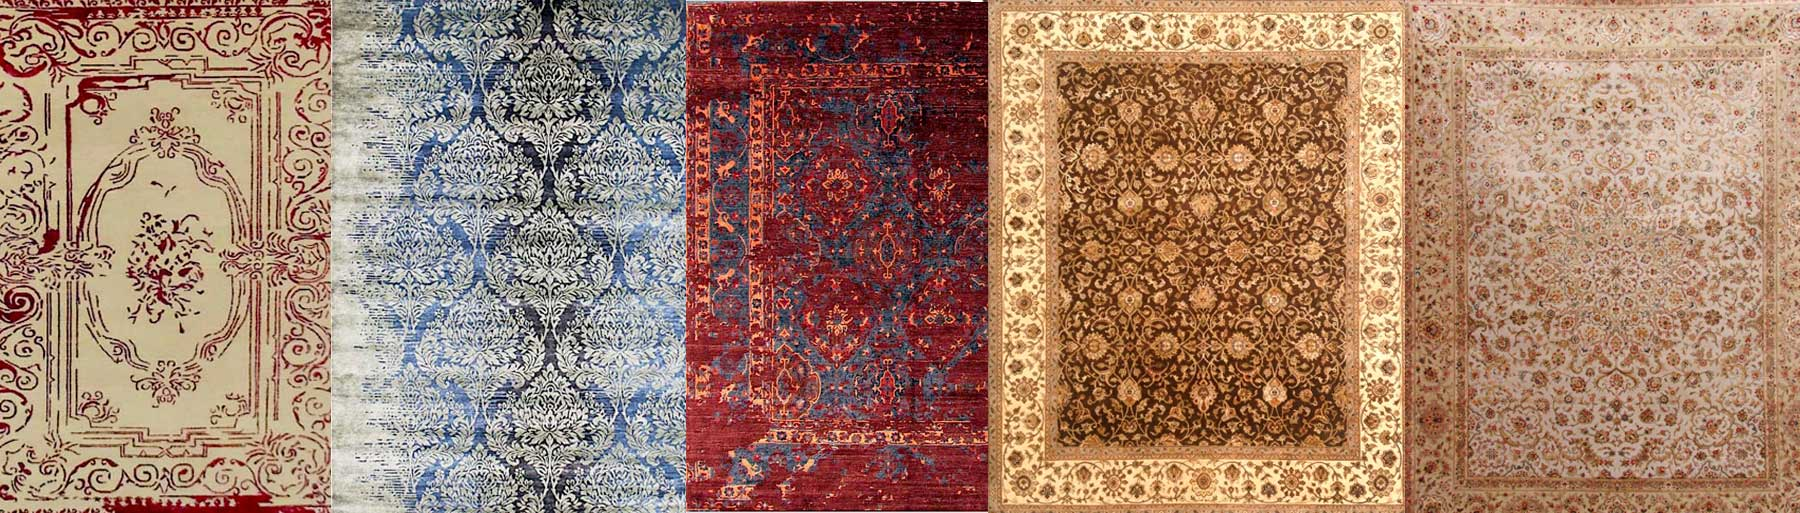 Are you looking for silk rugs